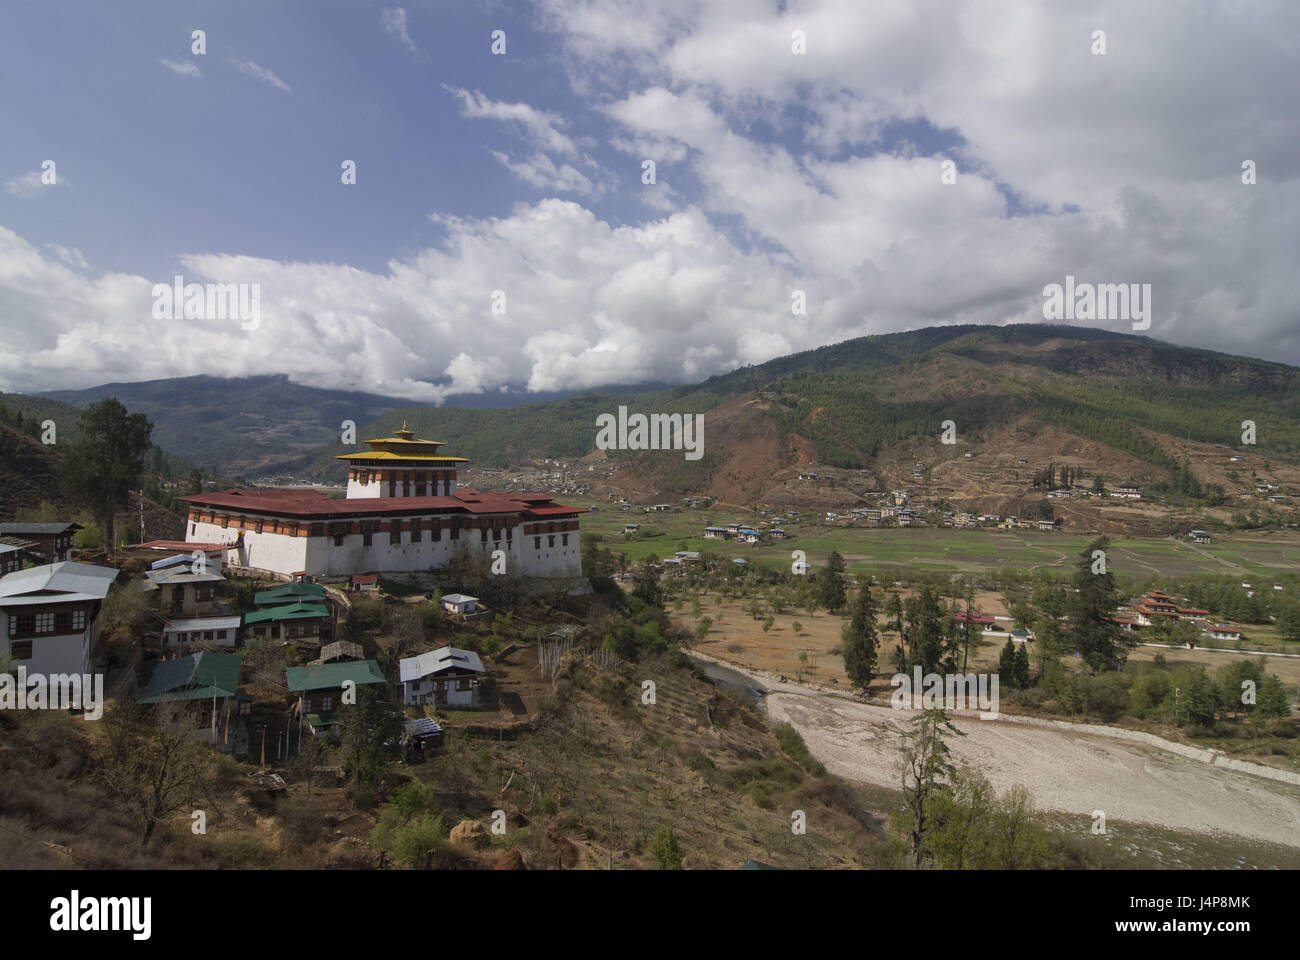 Buddhist monastery, Paro, Bhutan, Stock Photo